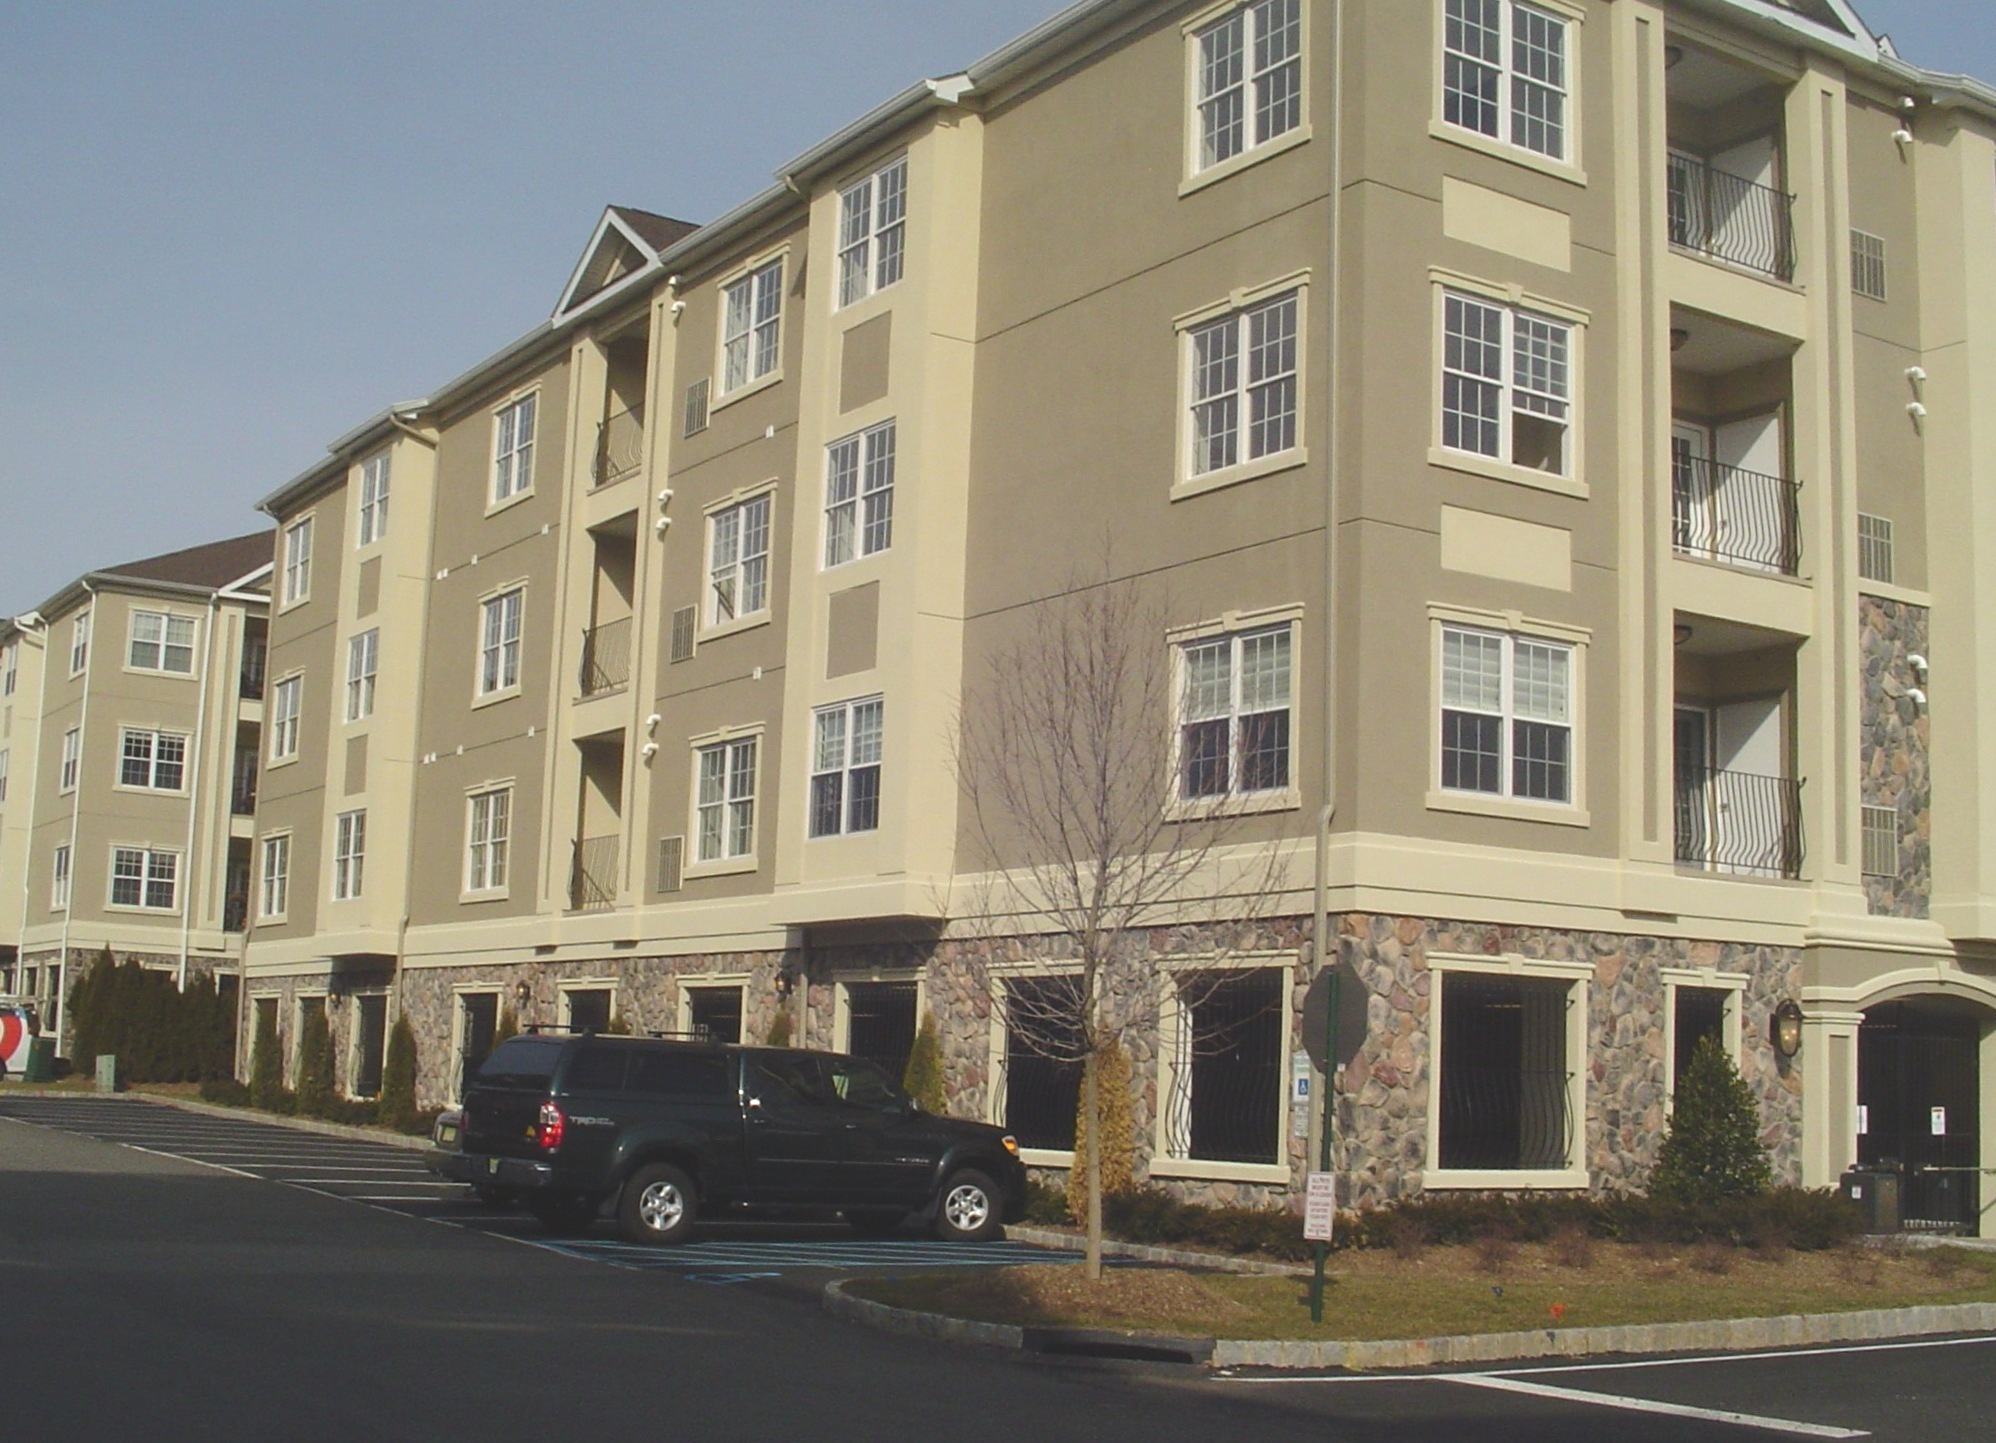 Apt building in Passaic County, stucco and stone work